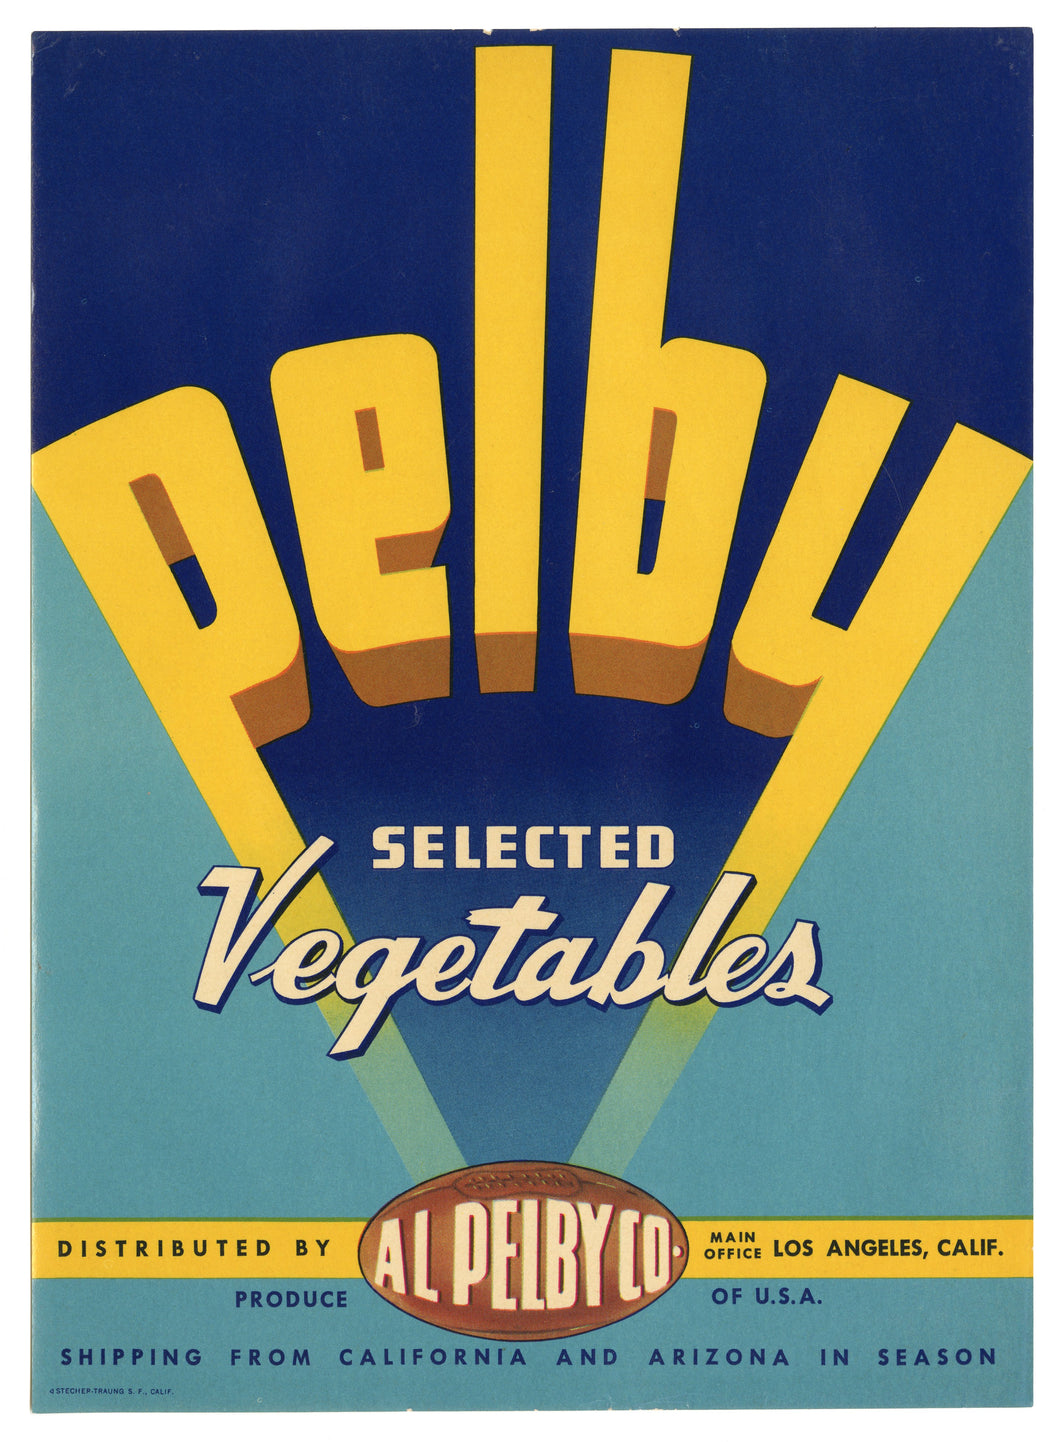 Vintage, Unused PELBY Vegetable Crate Label || Los Angeles, Ca.